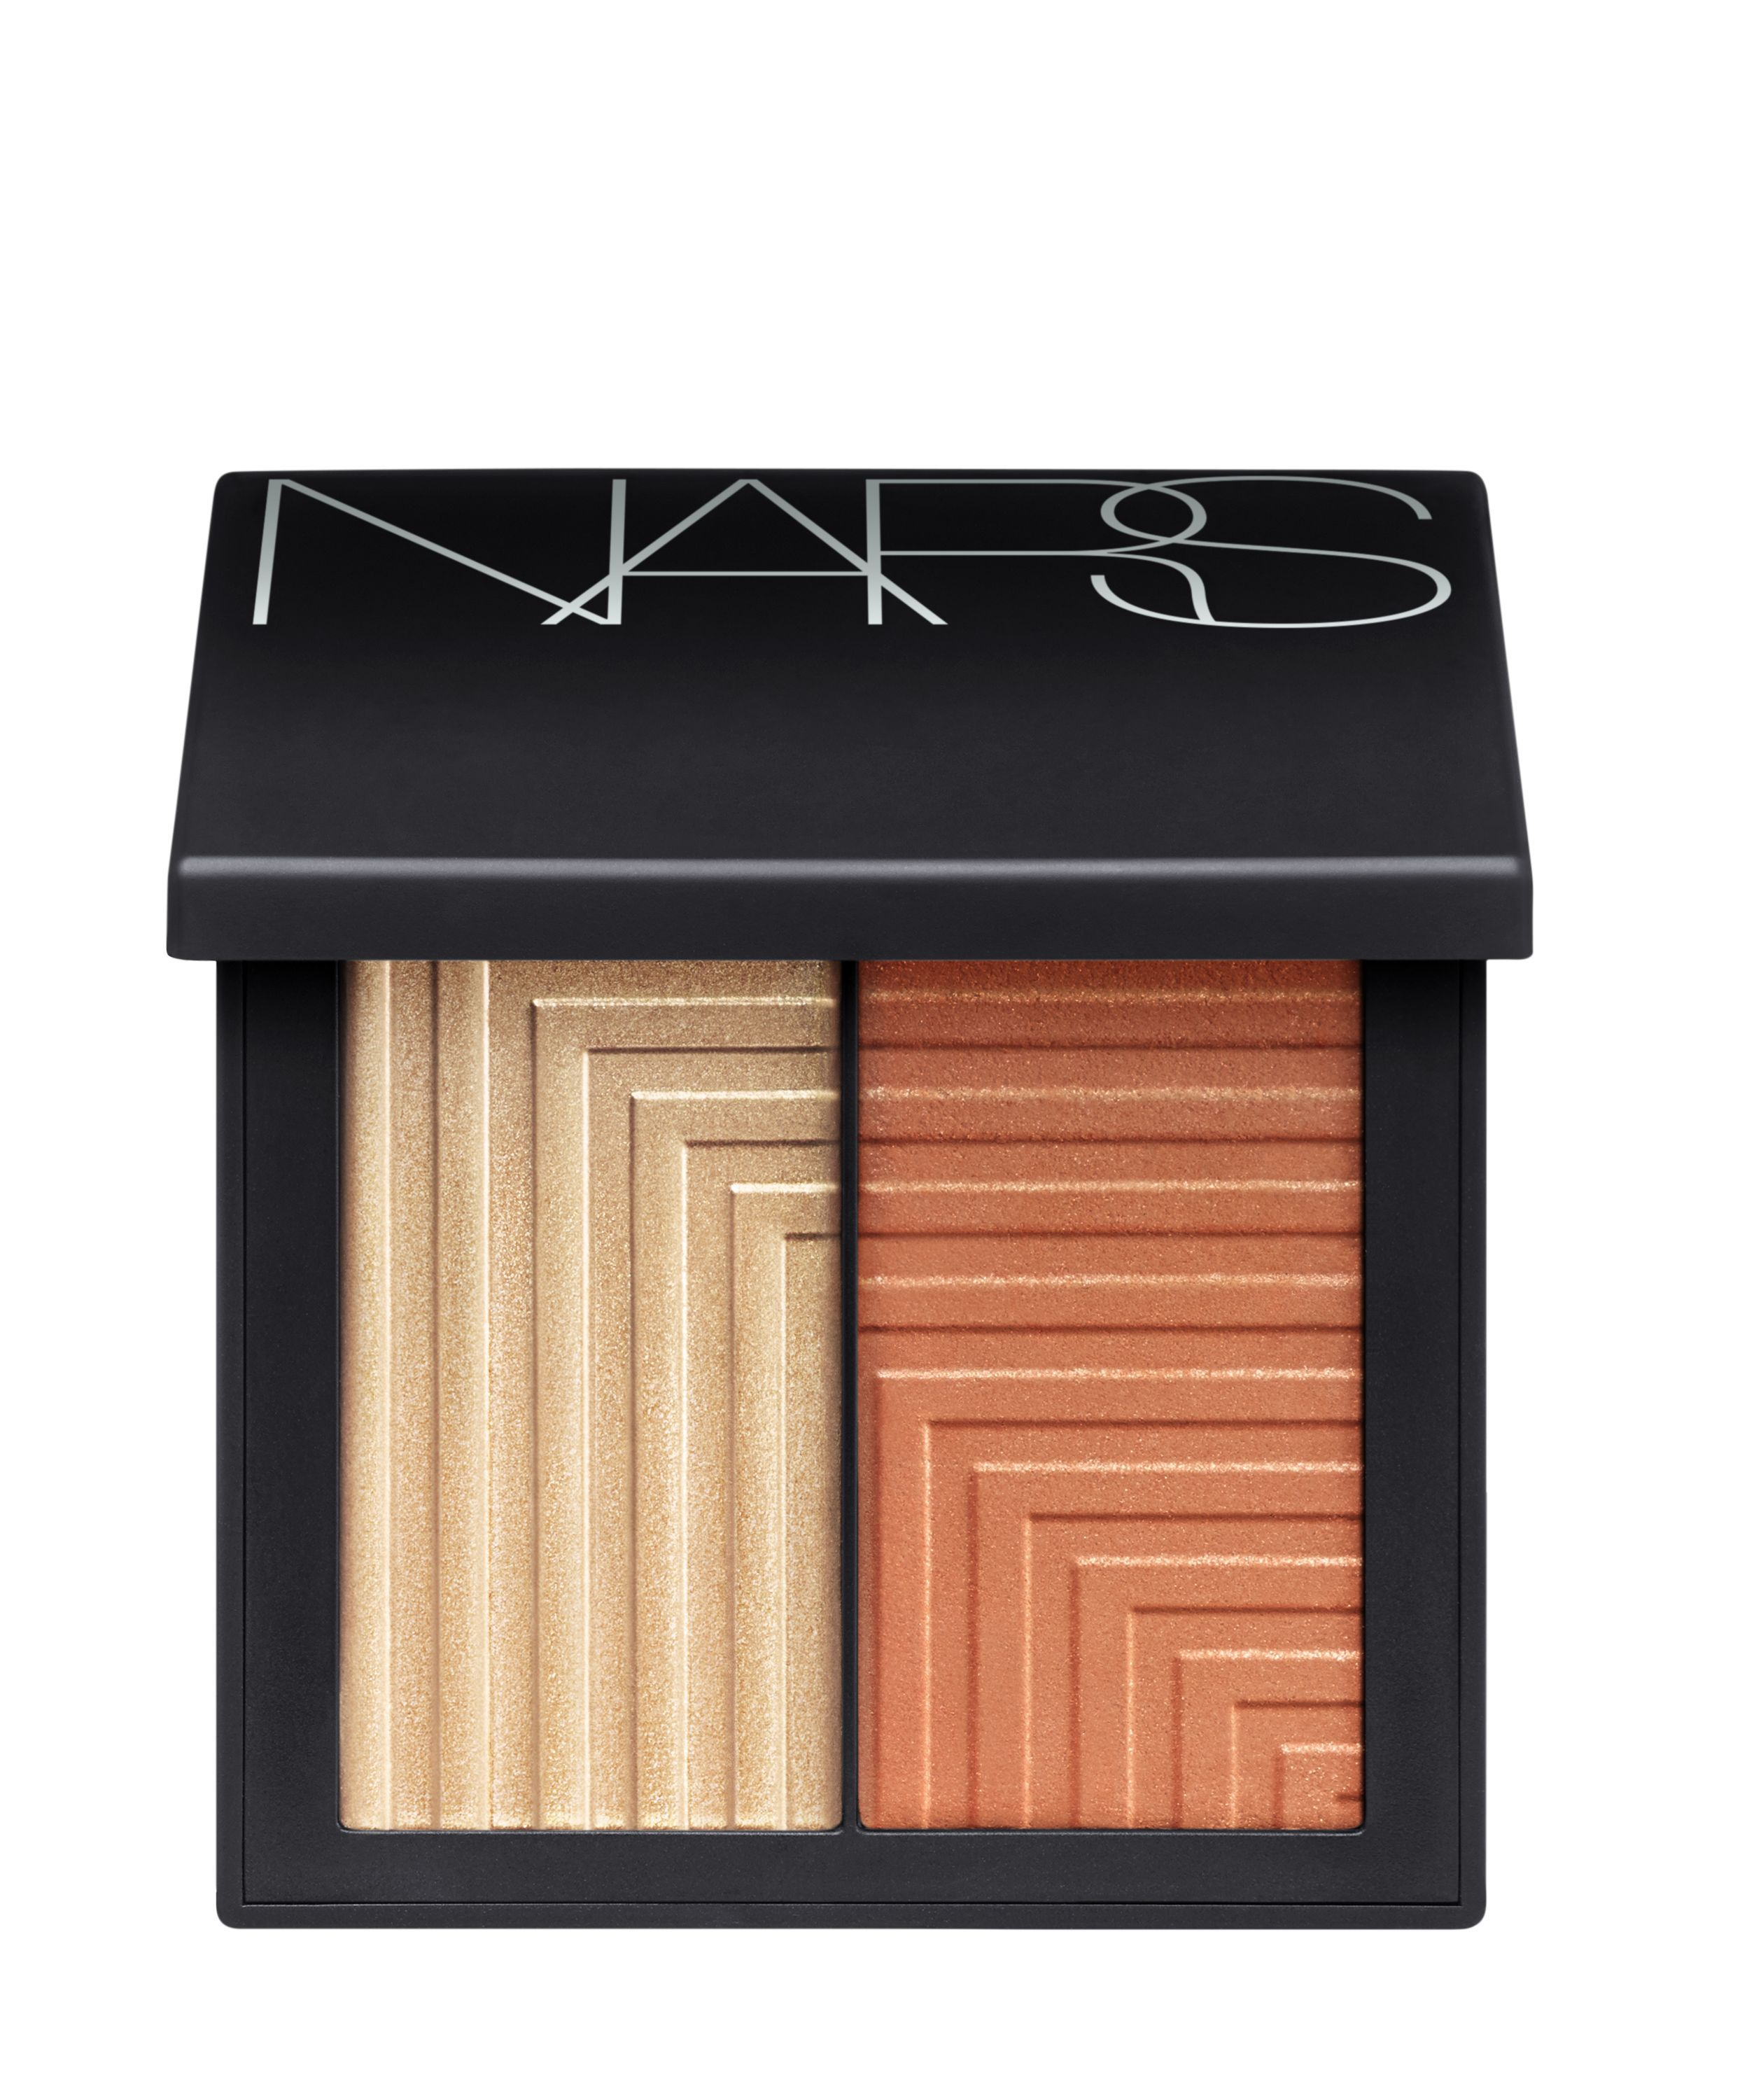 Nars Cosmetics Nars Cosmetics Dual Intensity Blush, Frenzy